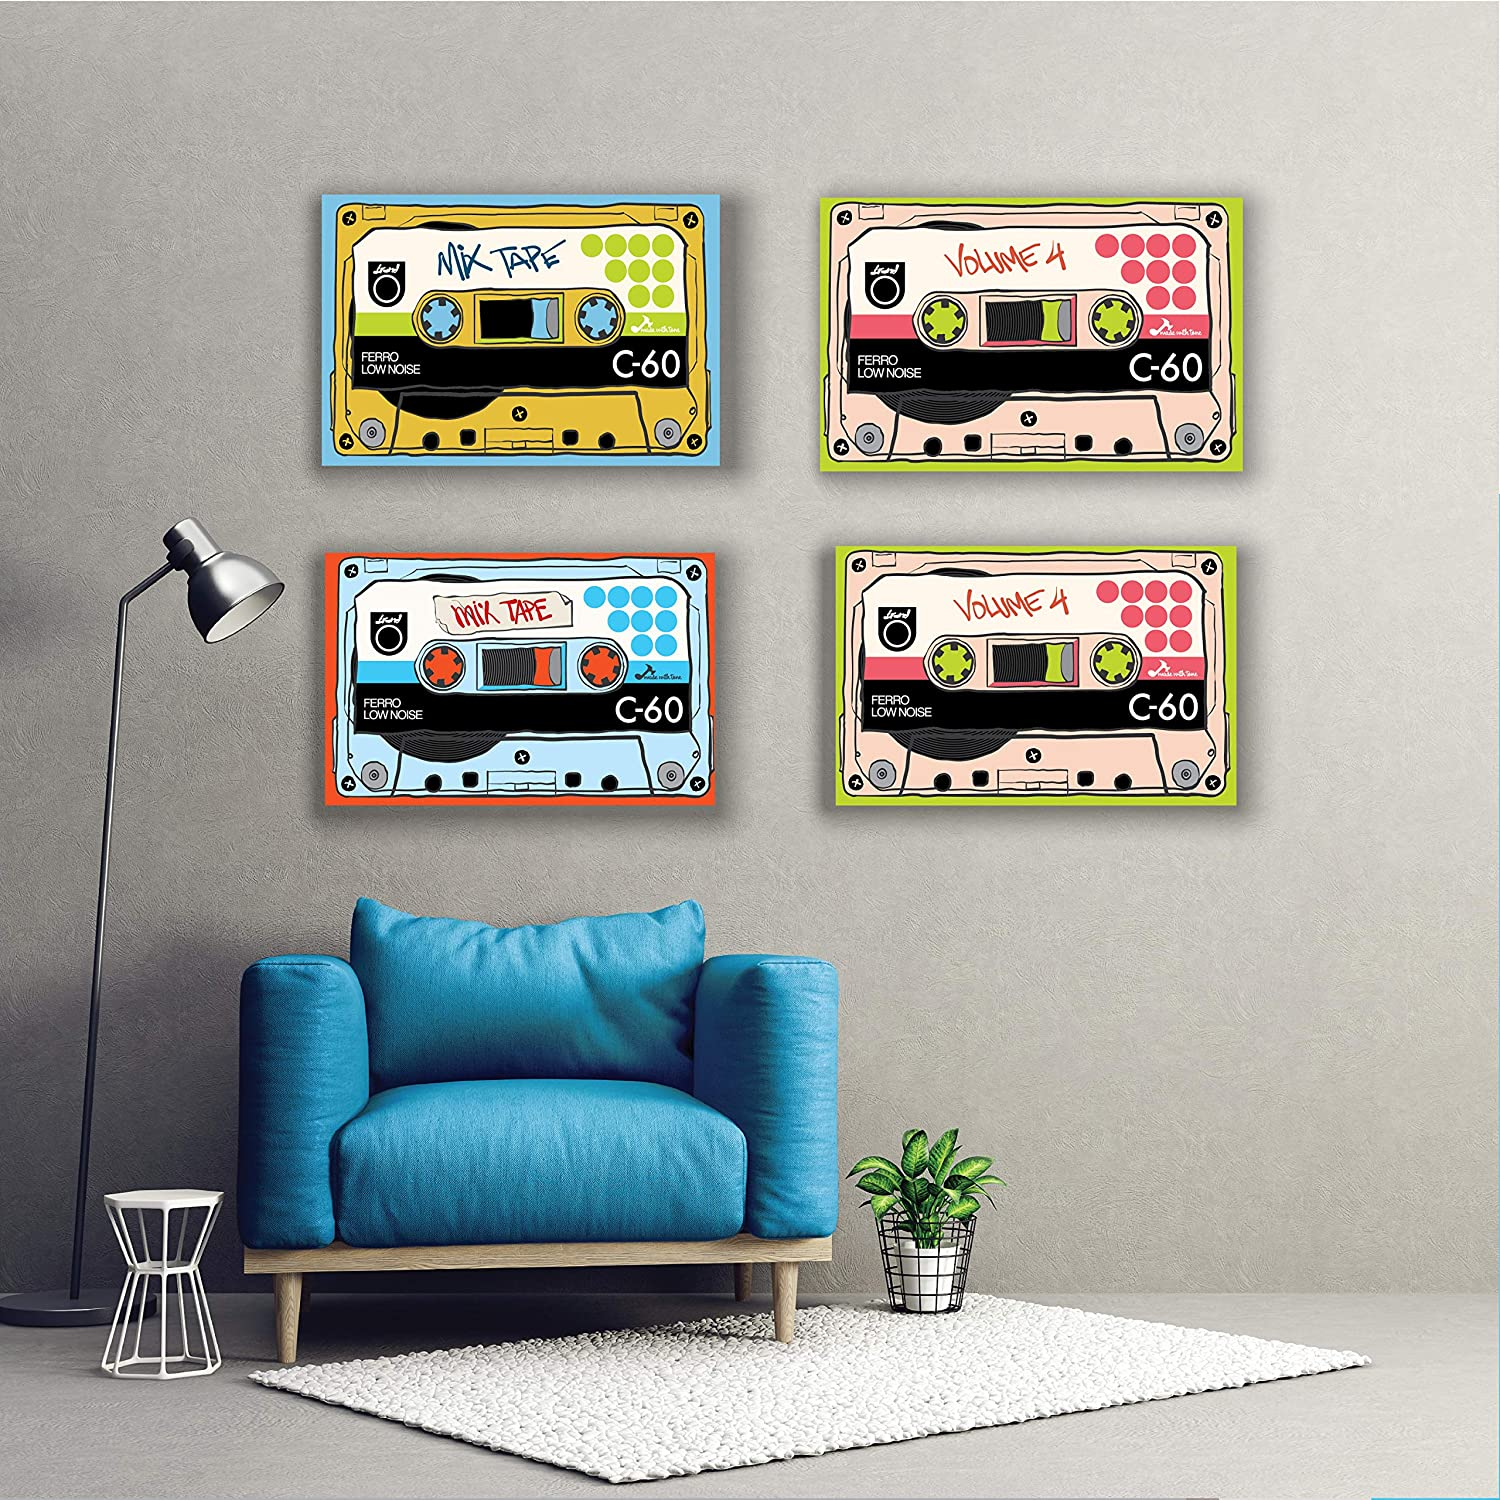 Wall Art Decorations for Musician Poster Retro and Old School Music Vintage Print Decor for Classroom and Work Paintings Gifts for Room Rock and Country Decoration Prints